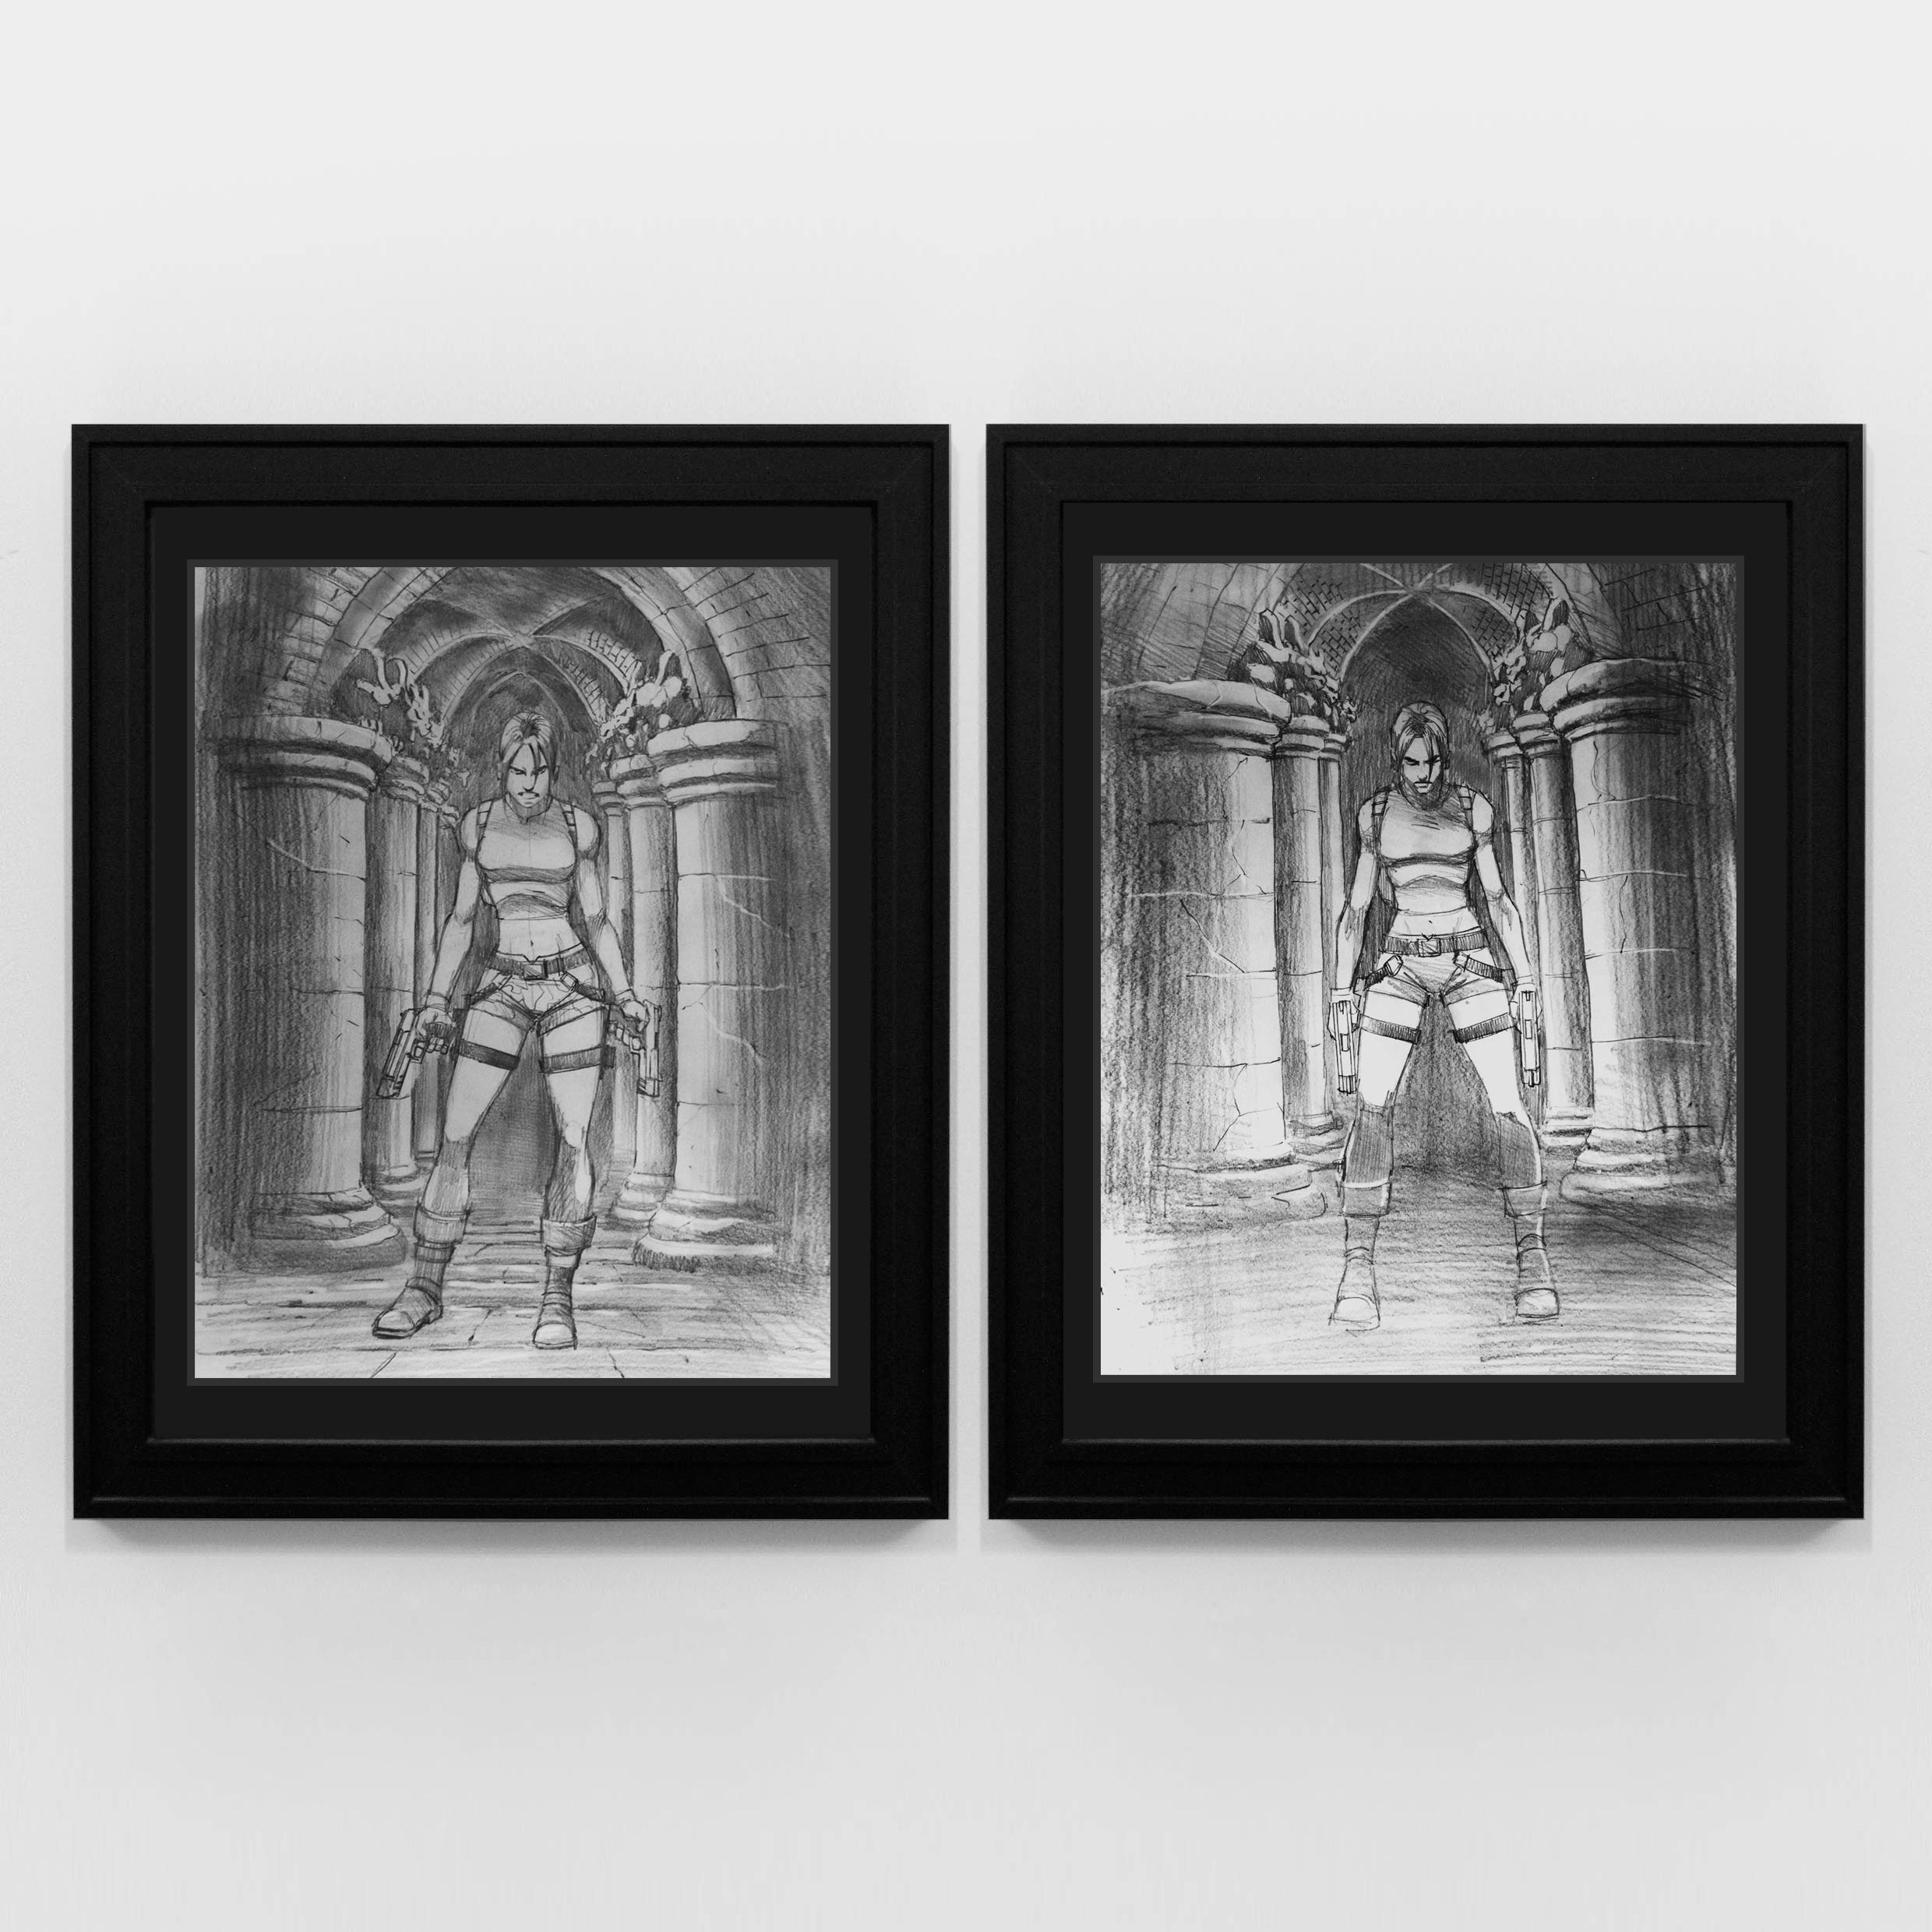 A picture of framed original artwork from Lara Croft Tomb Raider The Angel of Darkness by the artist Steve Beaumont